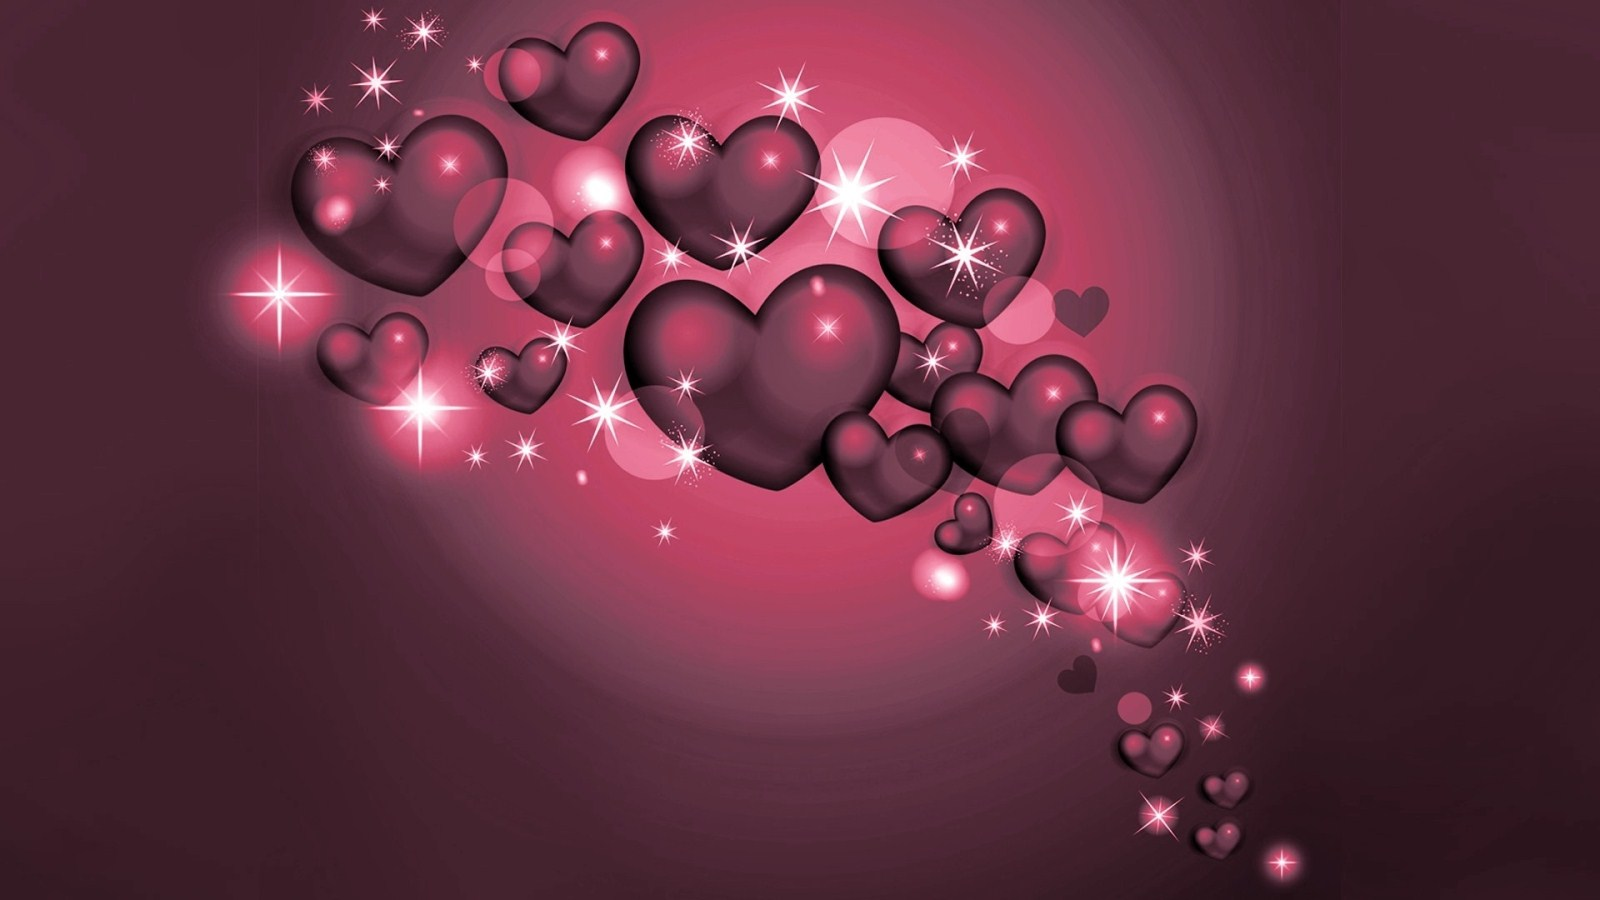 Free Download Love Heart 3d Hd Wallpapers 1080p Download 1600x900